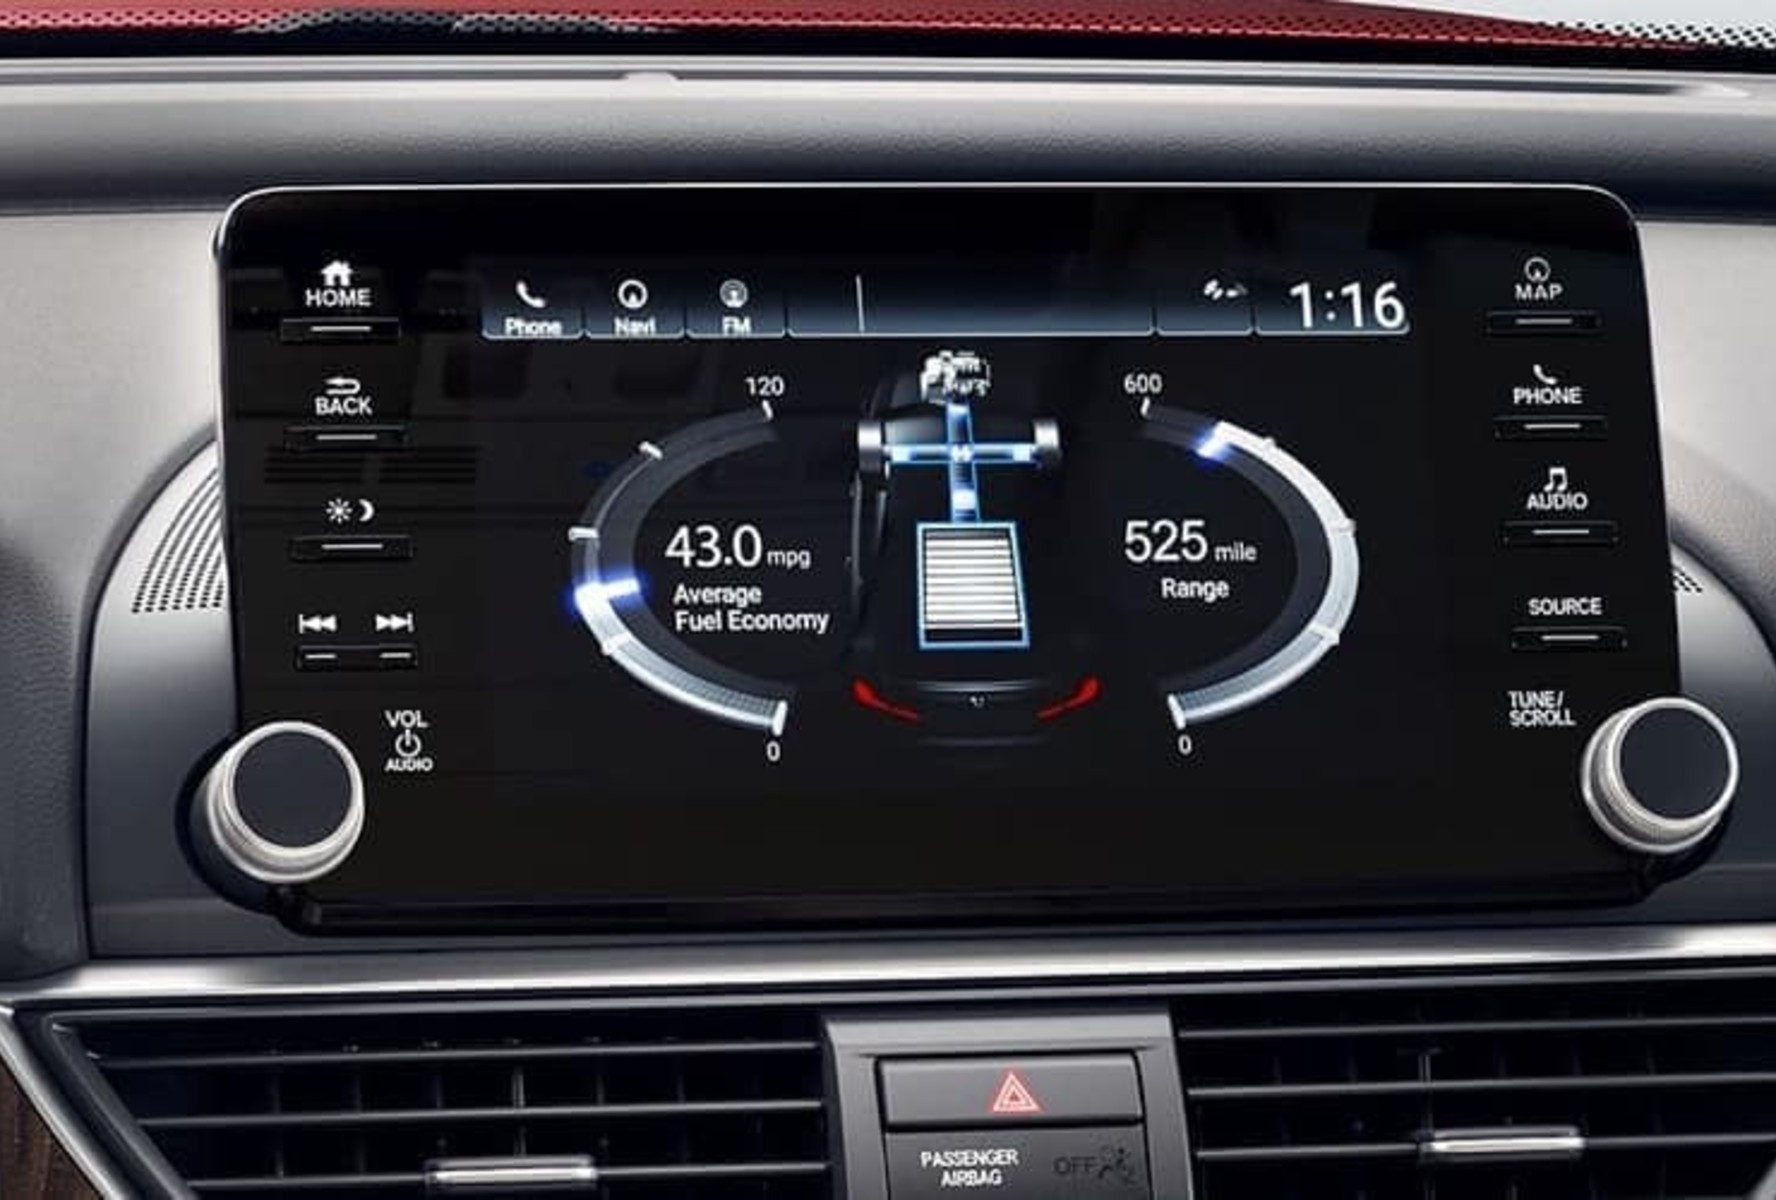 The 2019 Honda Accord comes loaded with the latest technology features